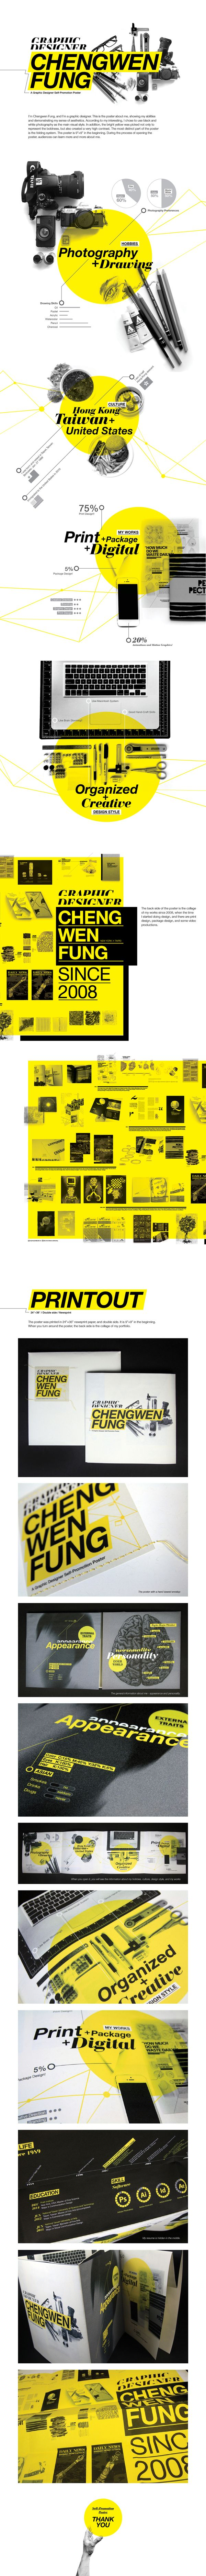 Self-Promotion poster by CHENGWEN fung, via Behance | #webdesign